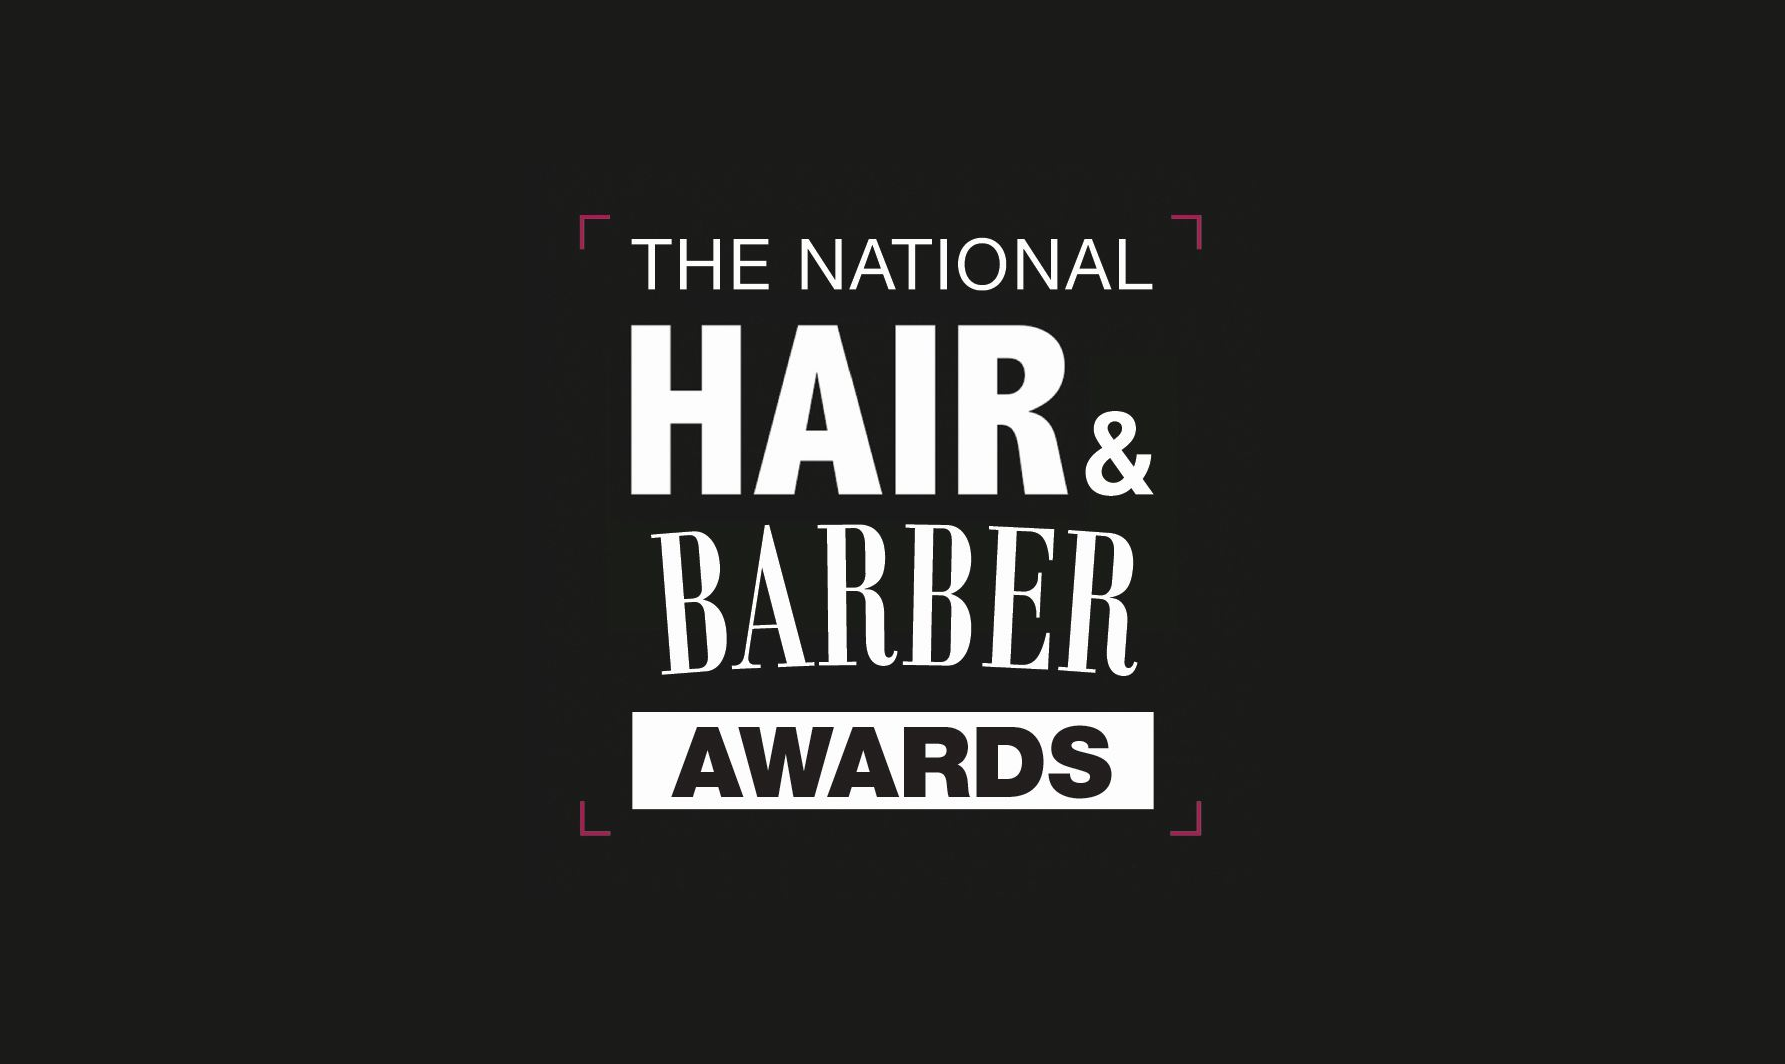 Get Groomed is nominated for the The National Hair & Barber Awards 2018